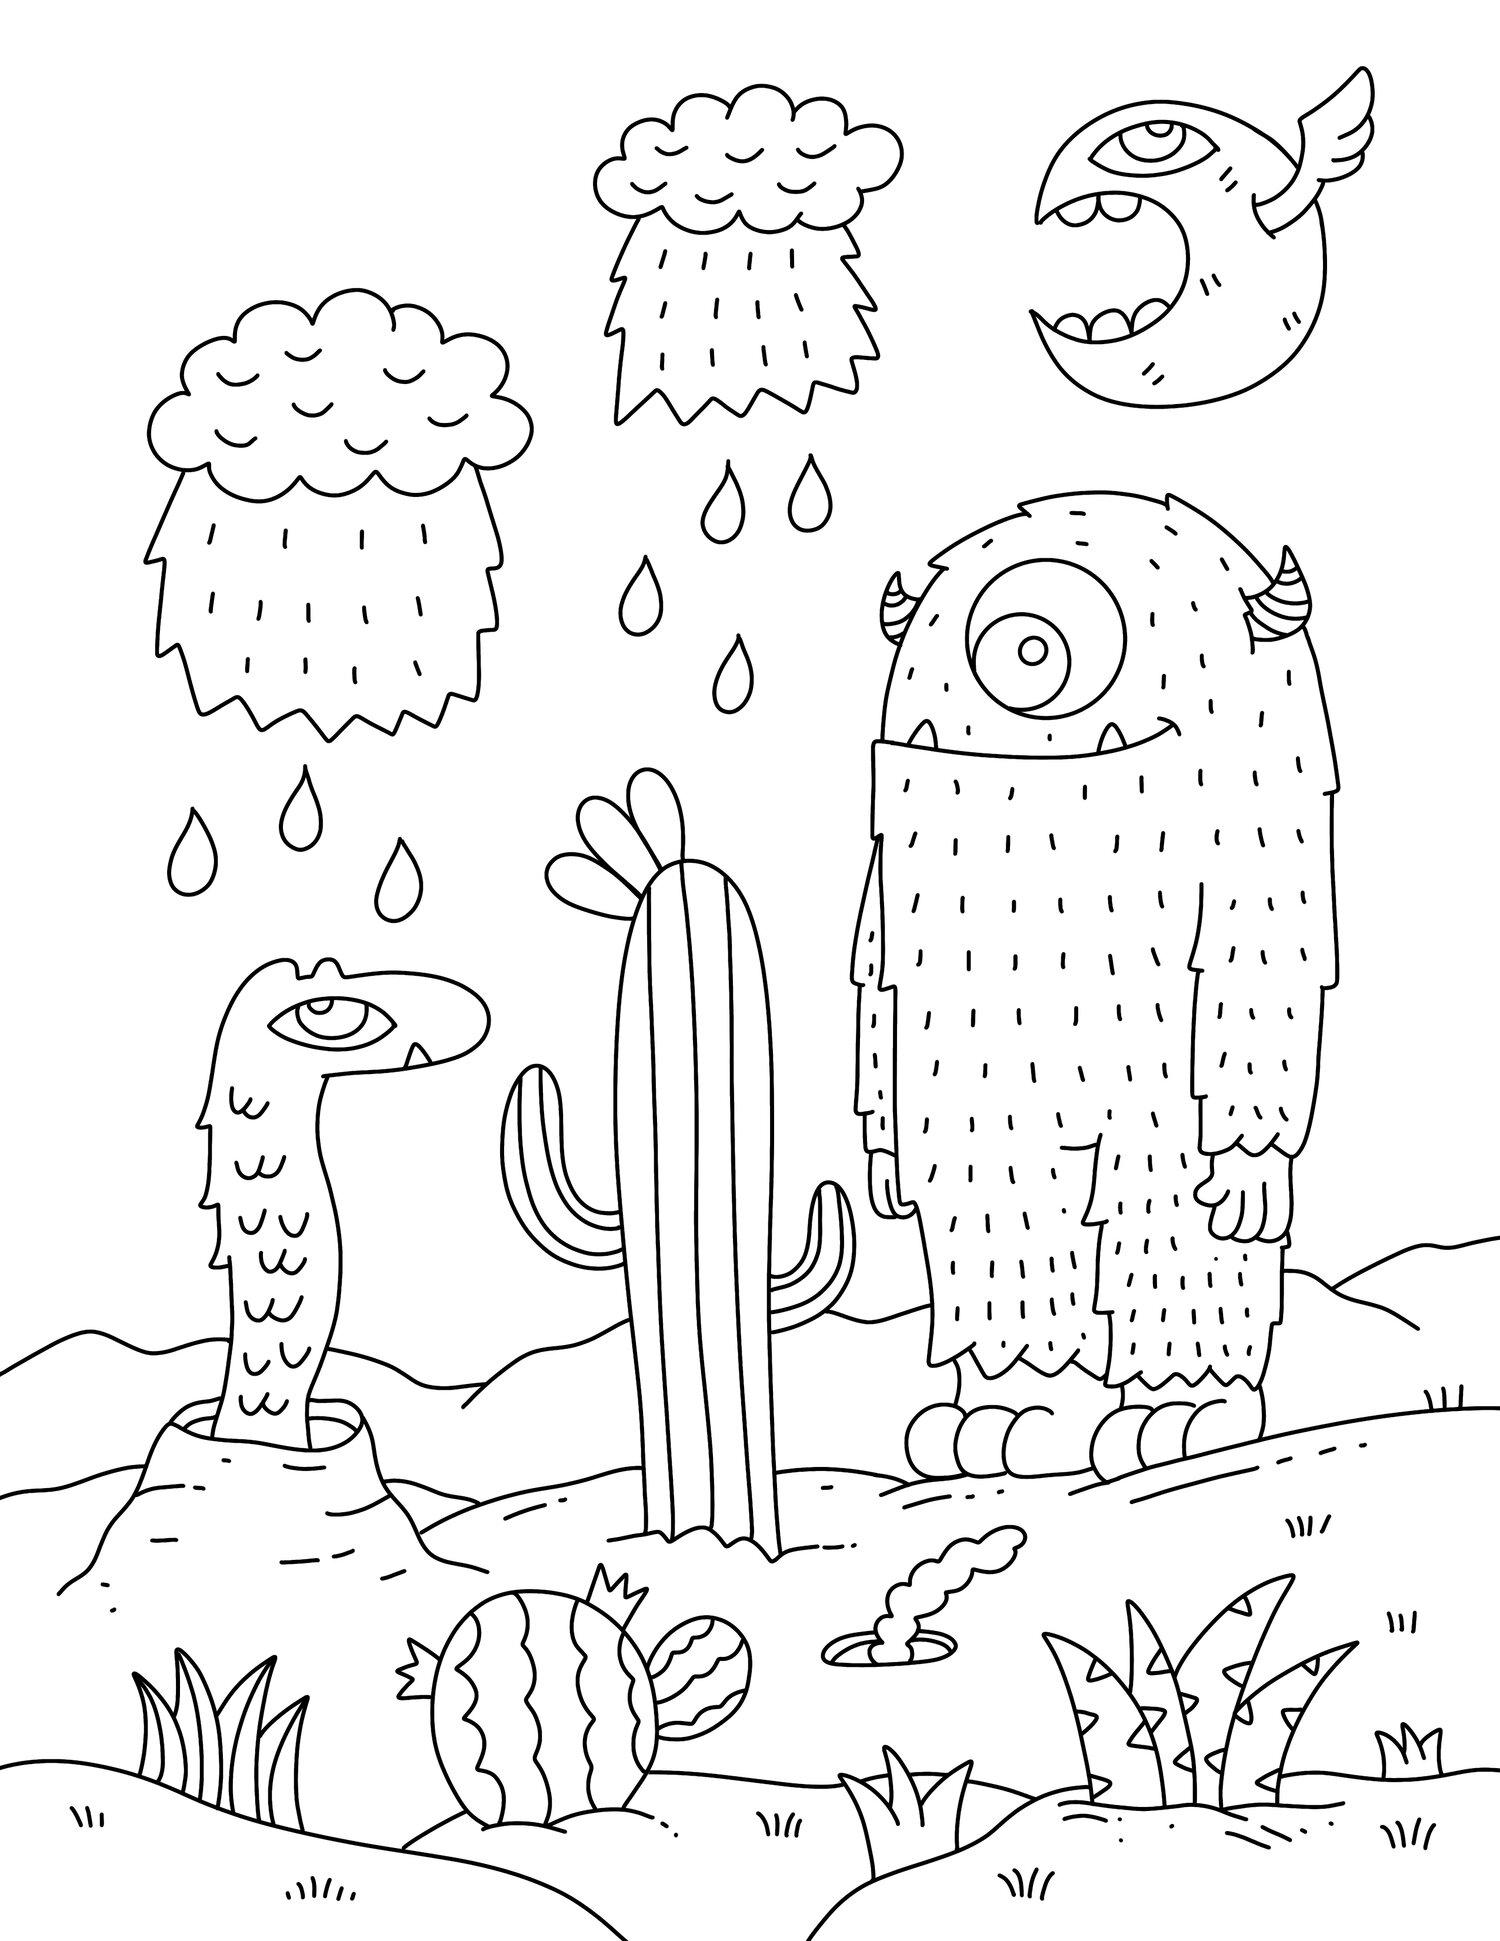 Free coloring pages about family that you can print out for your ... | 1941x1500